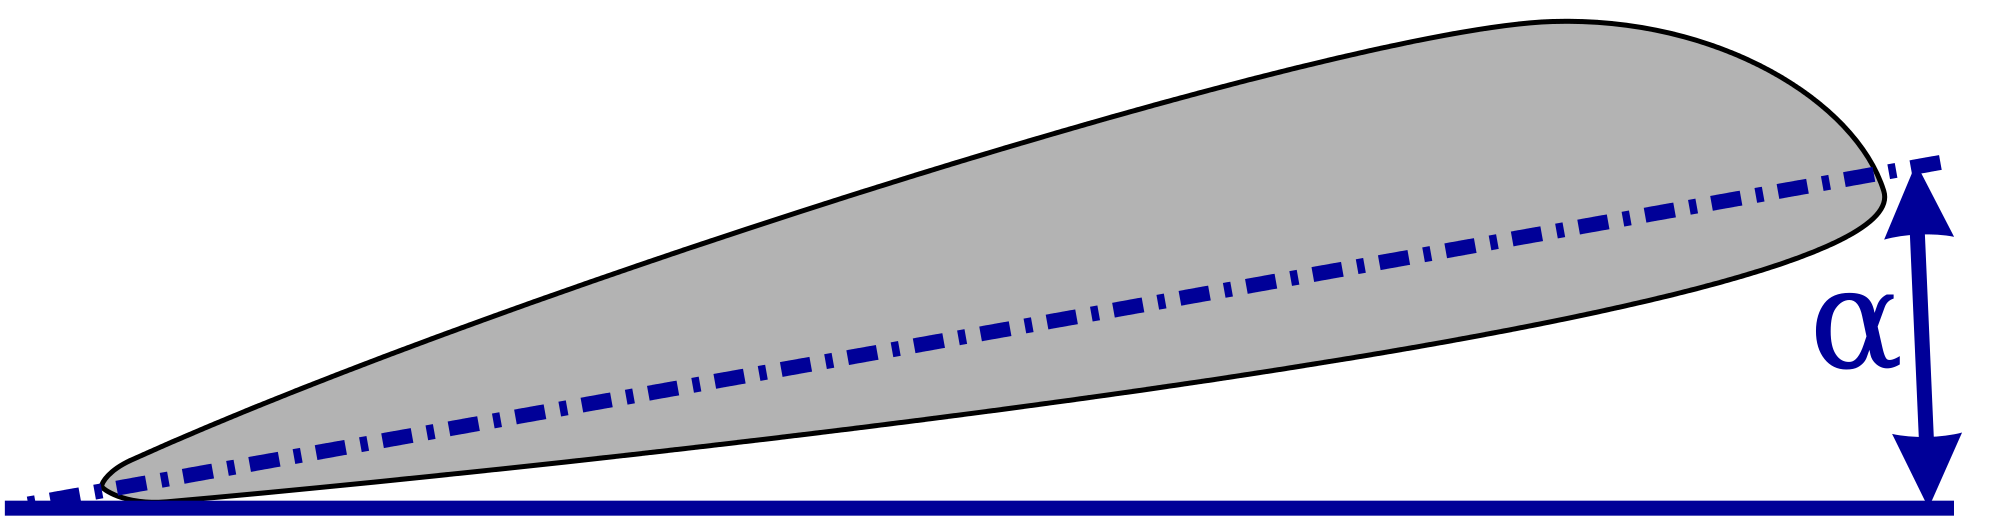 Wing svg angle. File of incidence wikimedia